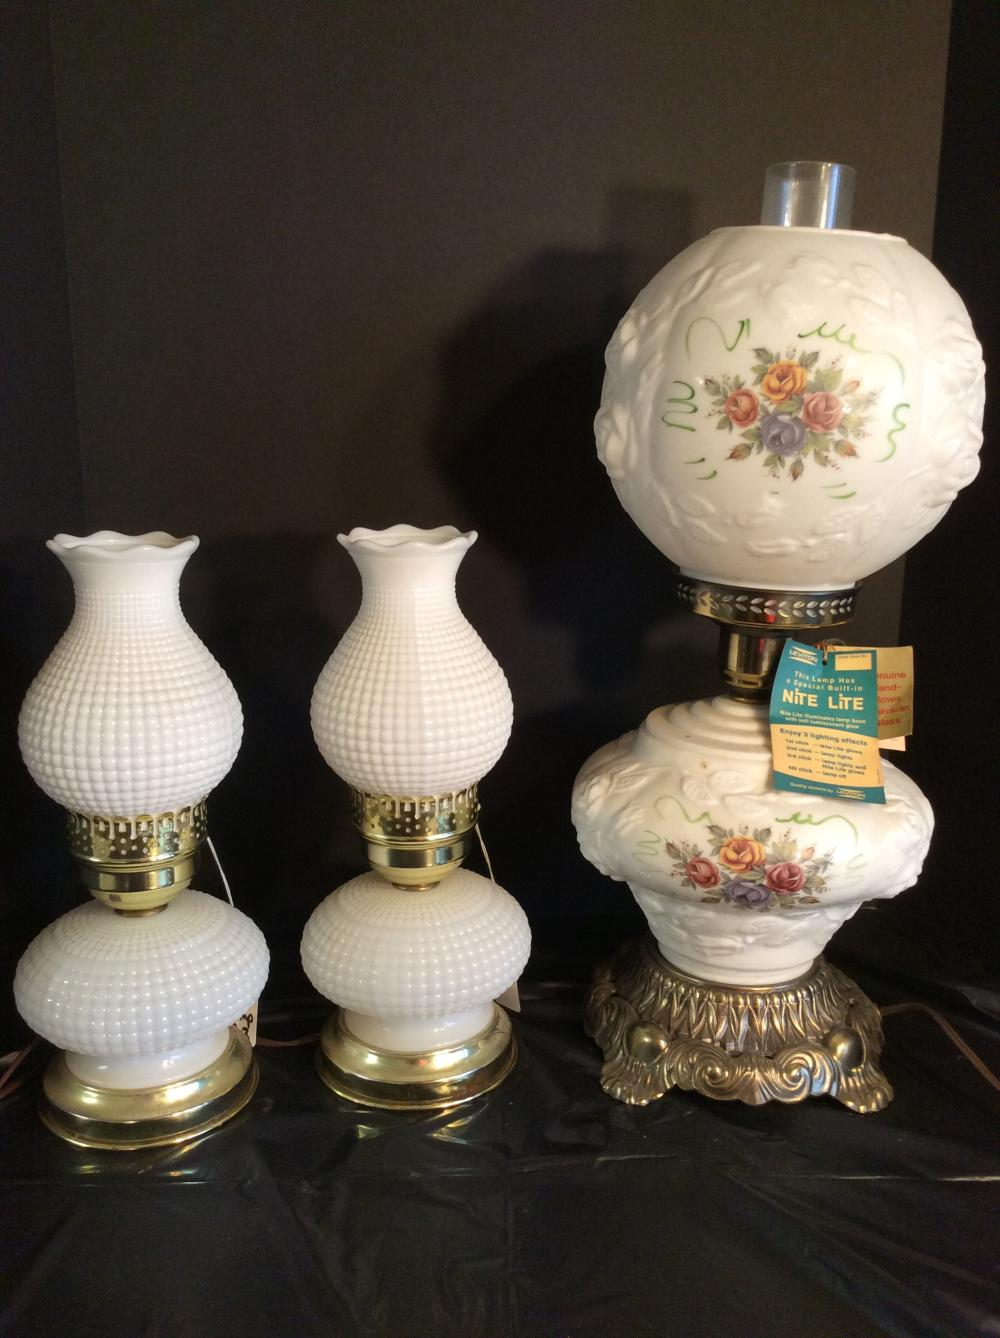 3 Table Lamps (1 Gone With the Wind, Pair of Milk Glass)